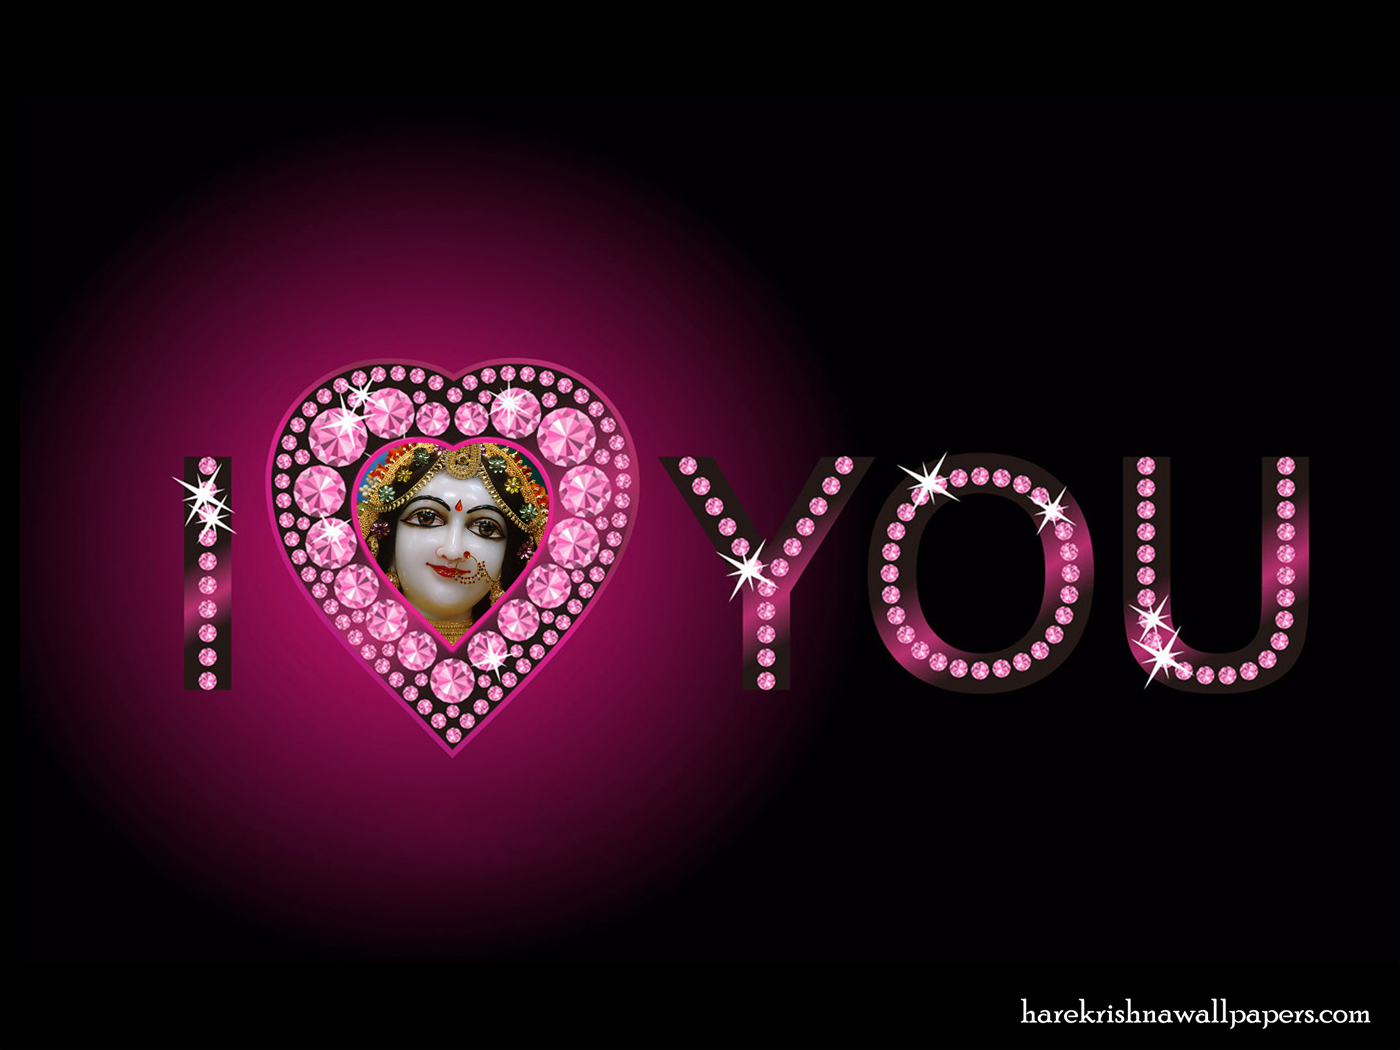 I Love You Radharani Wallpaper (012) Size 1400x1050 Download